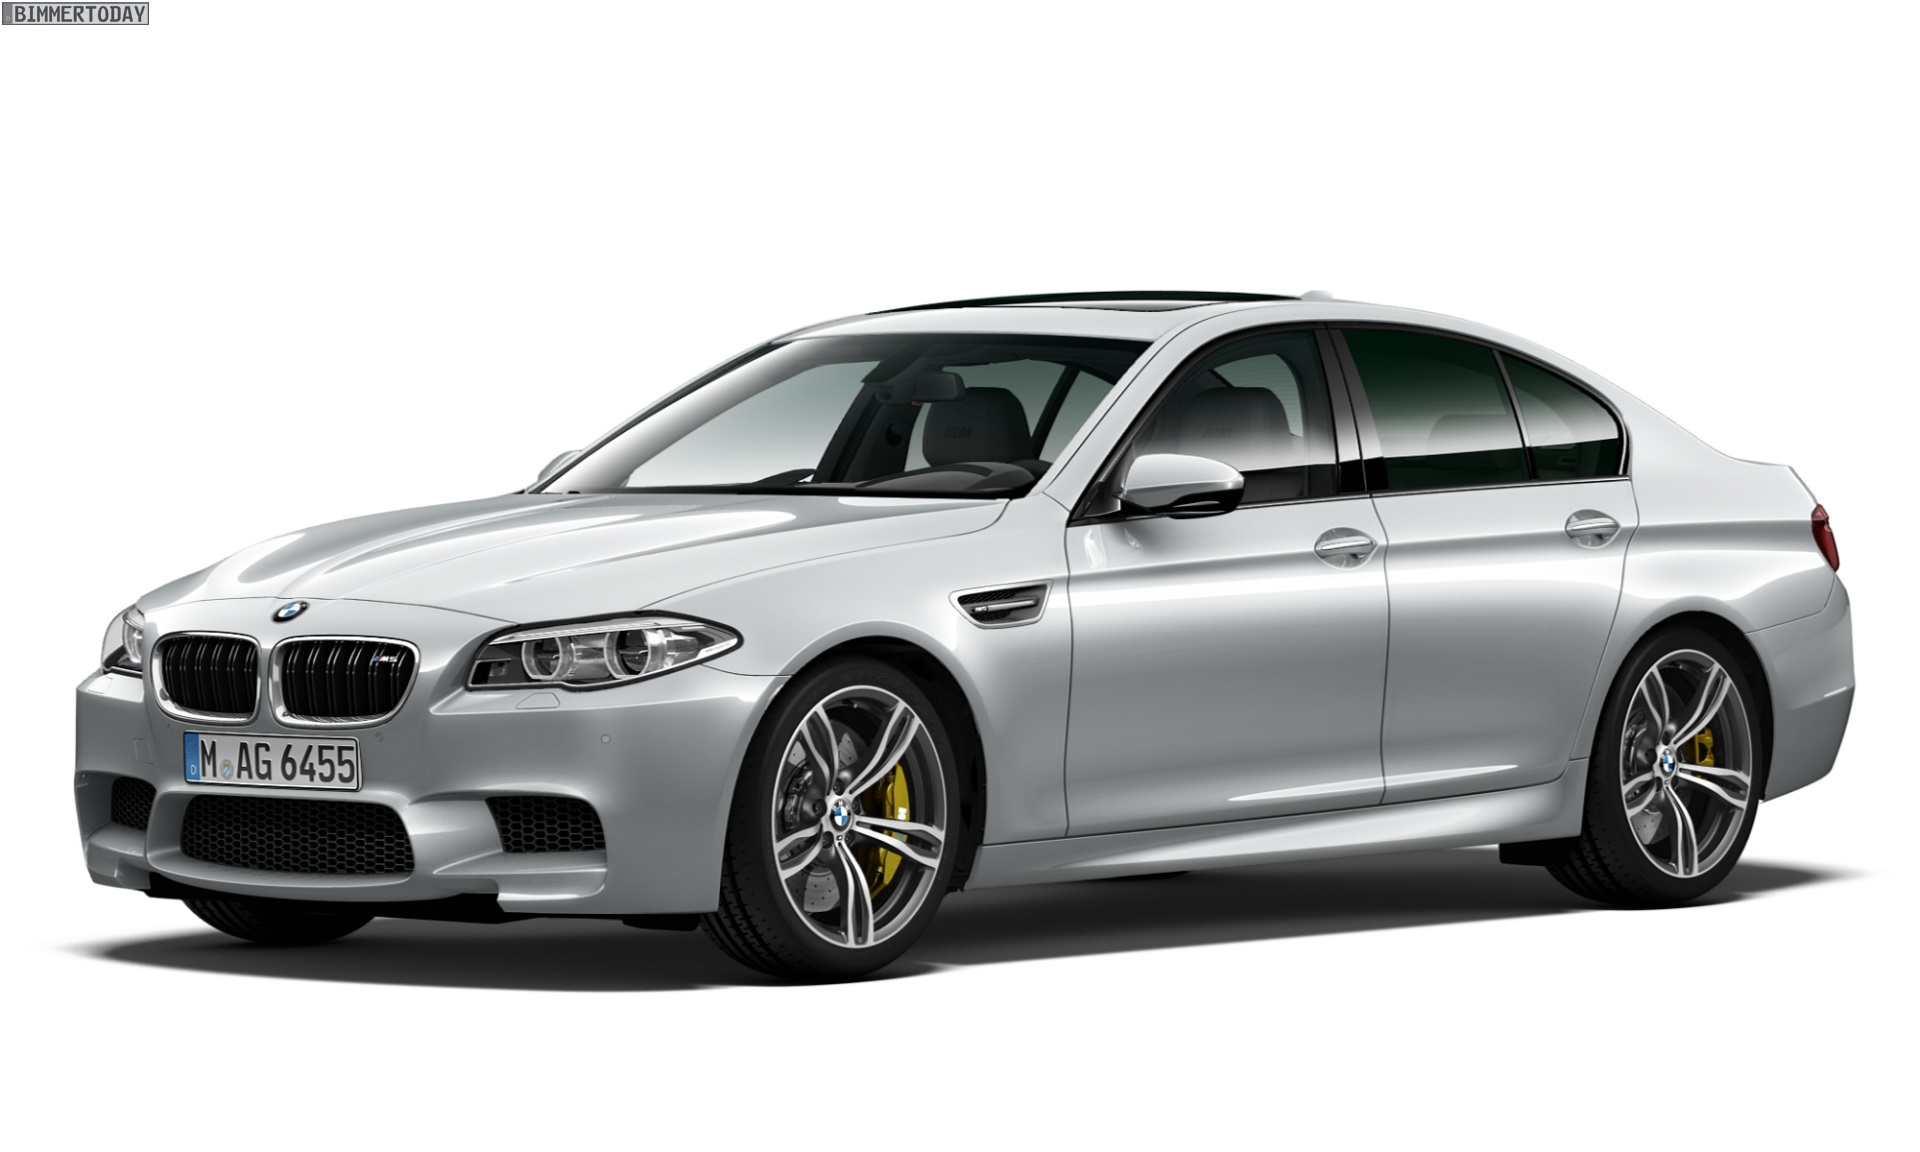 Bmw M5 Pure Metal Edition F10 Sondermodell Mit 600 Ps